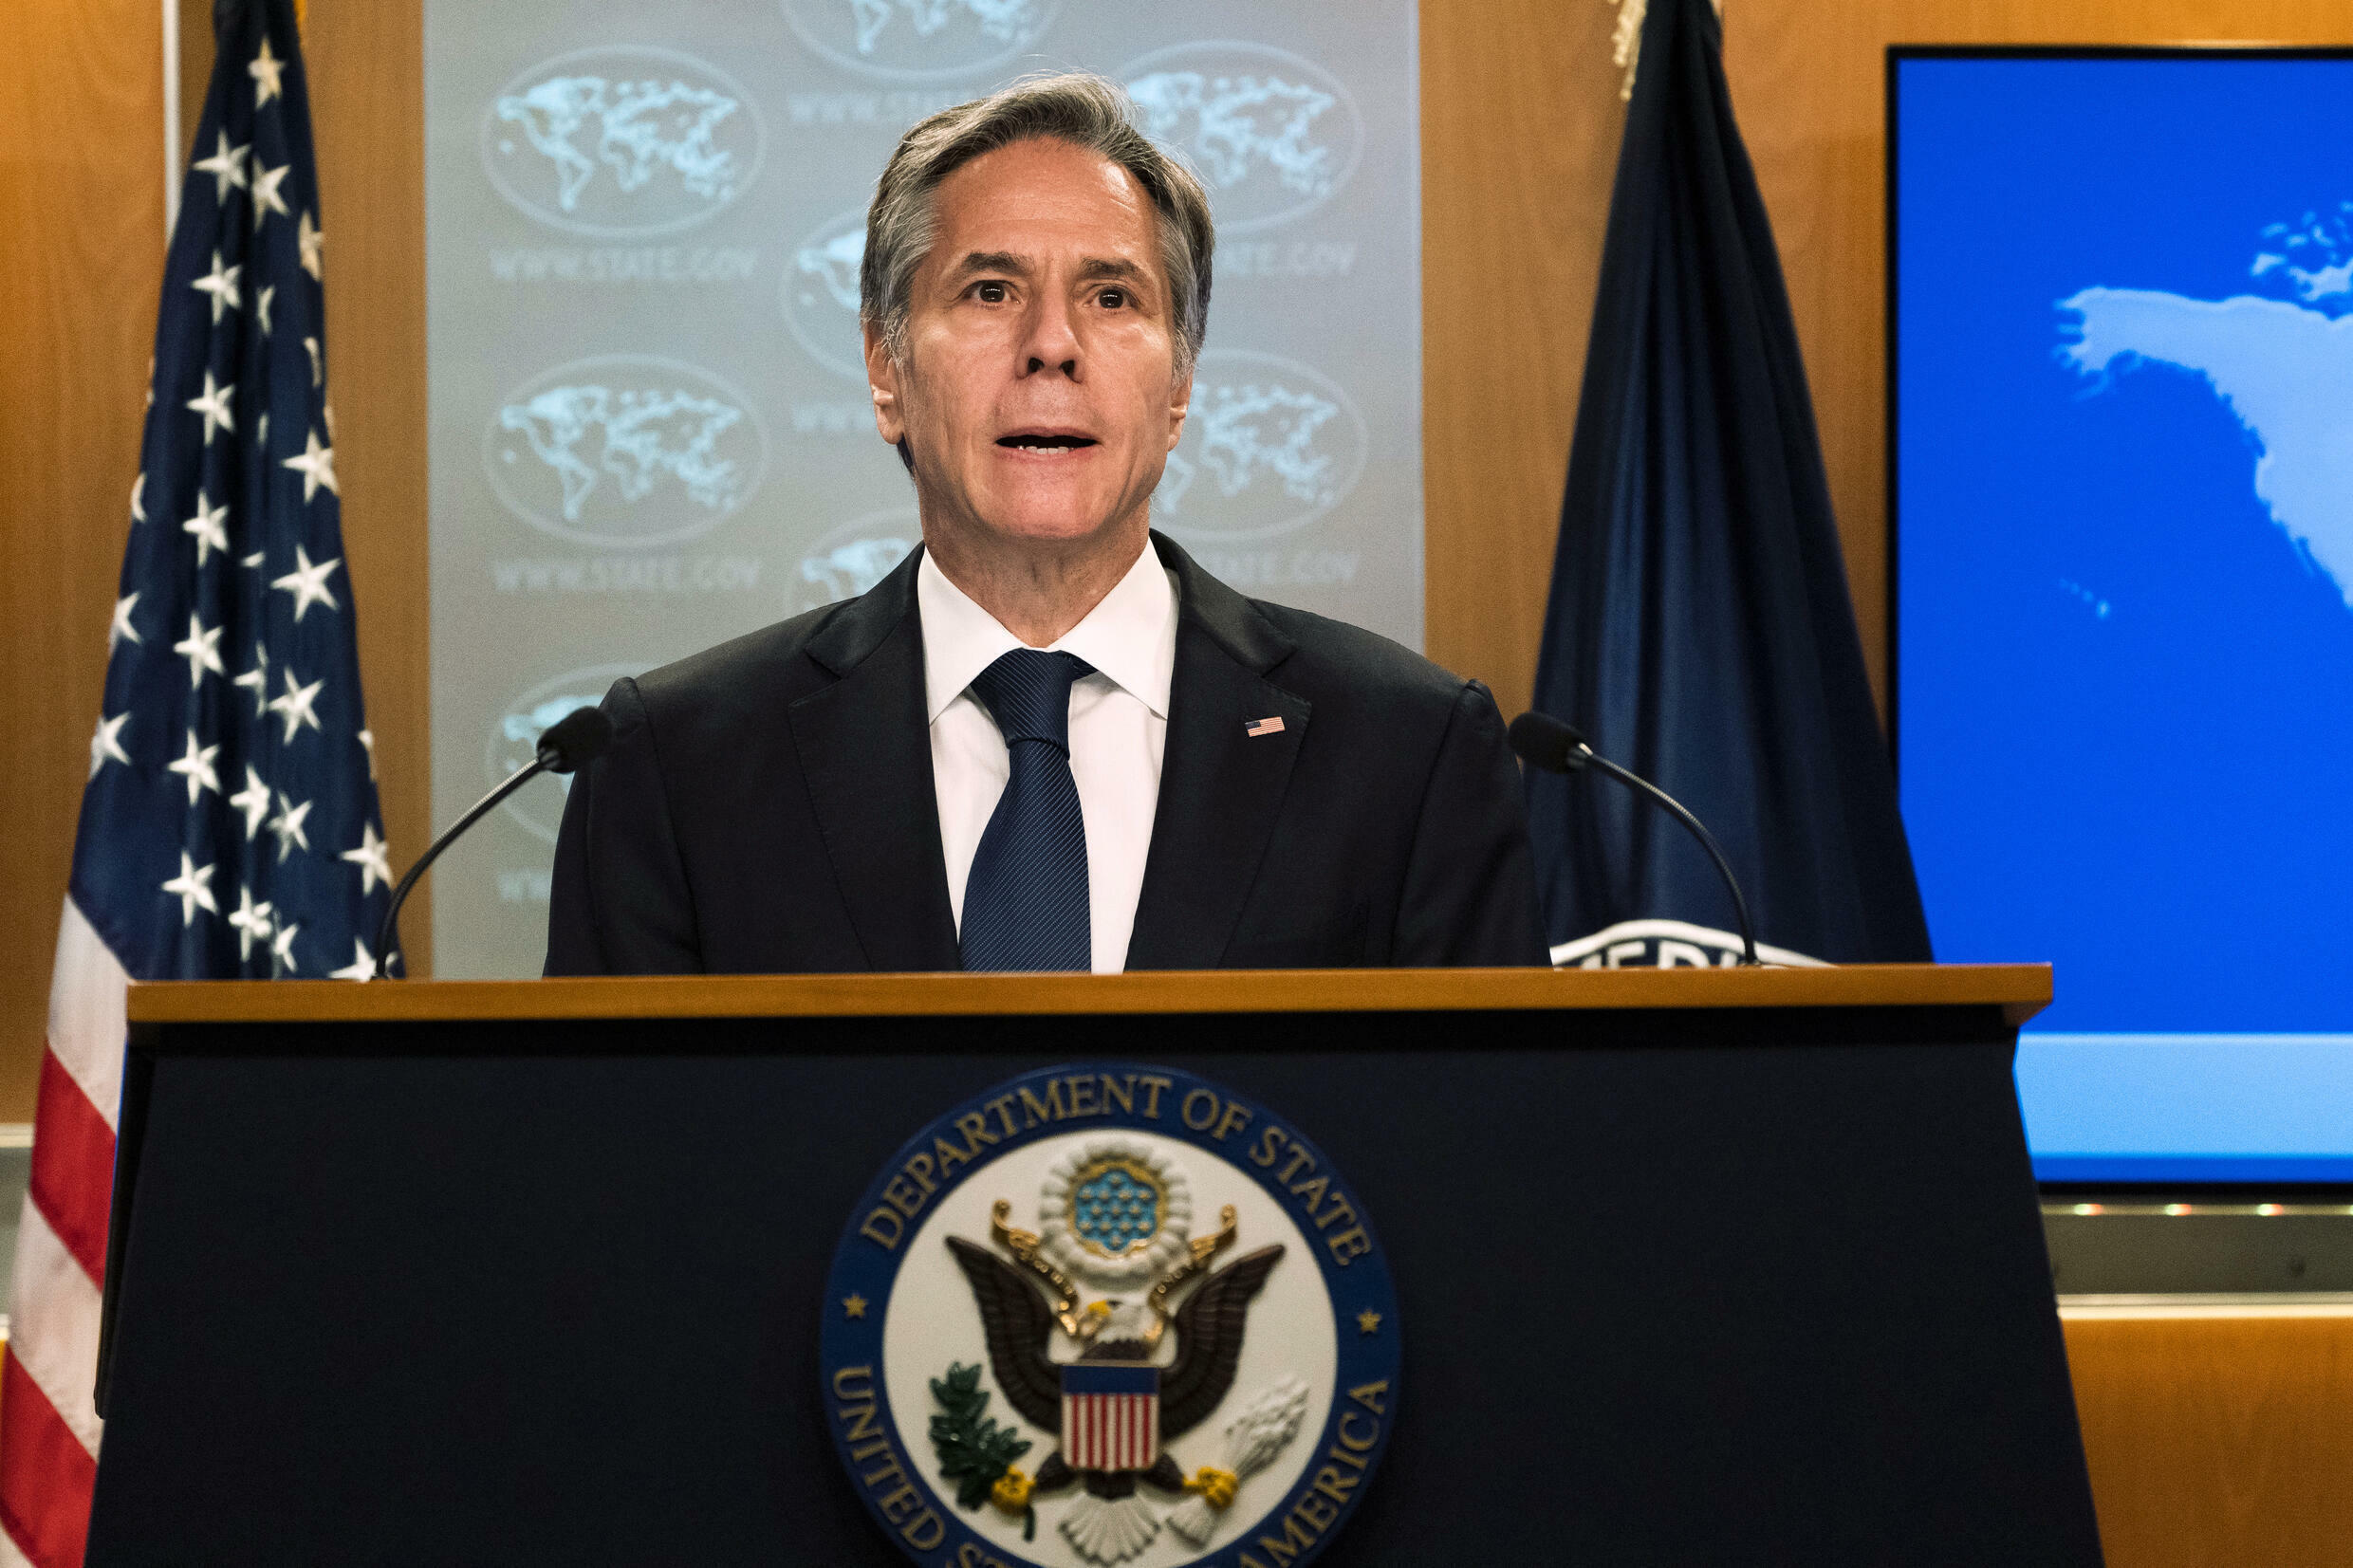 US Secretary of State Antony Blinken, who met in Washington in June 2021 with survivors of internment camps in China's Xinjiang region, has spoken out against the alleged use of forced labor there